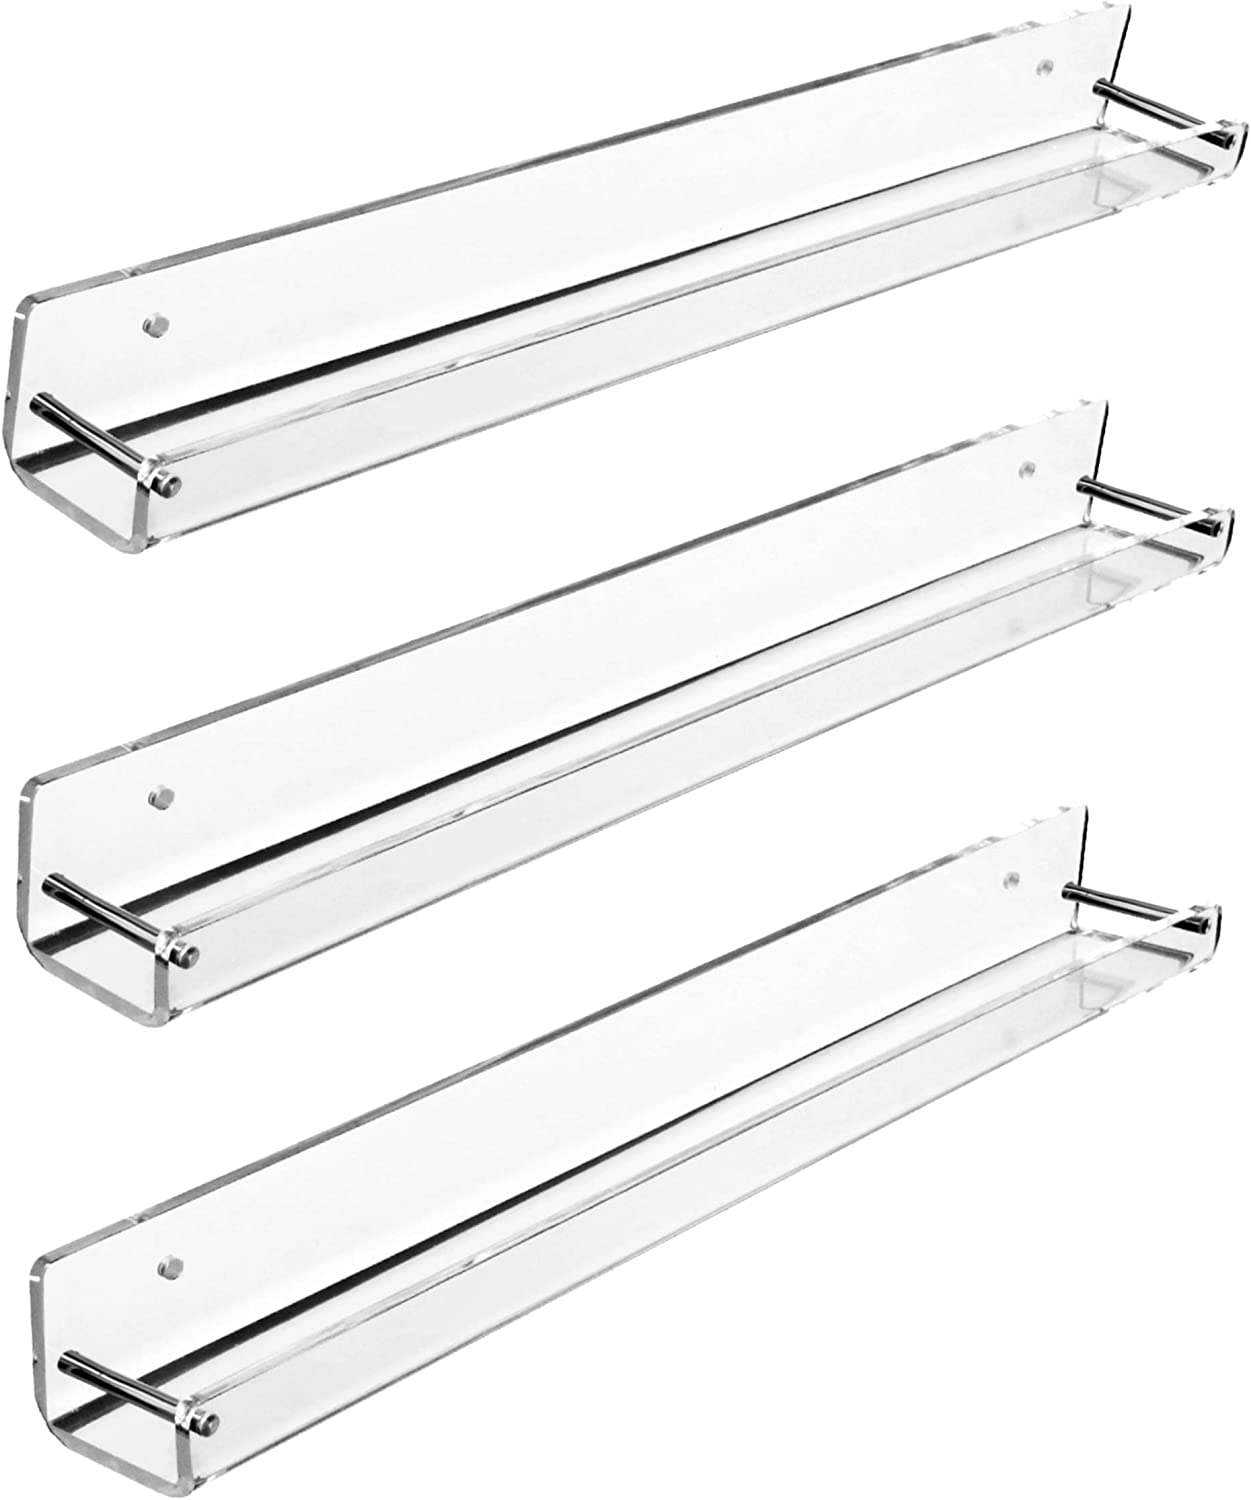 AMT Acrylic Floating Wall Display Shelves (3 Pack, Small) | Clear Acrylic Wall Shelf | Smart Design: Monolithic Products Without Screws or Adhesives!